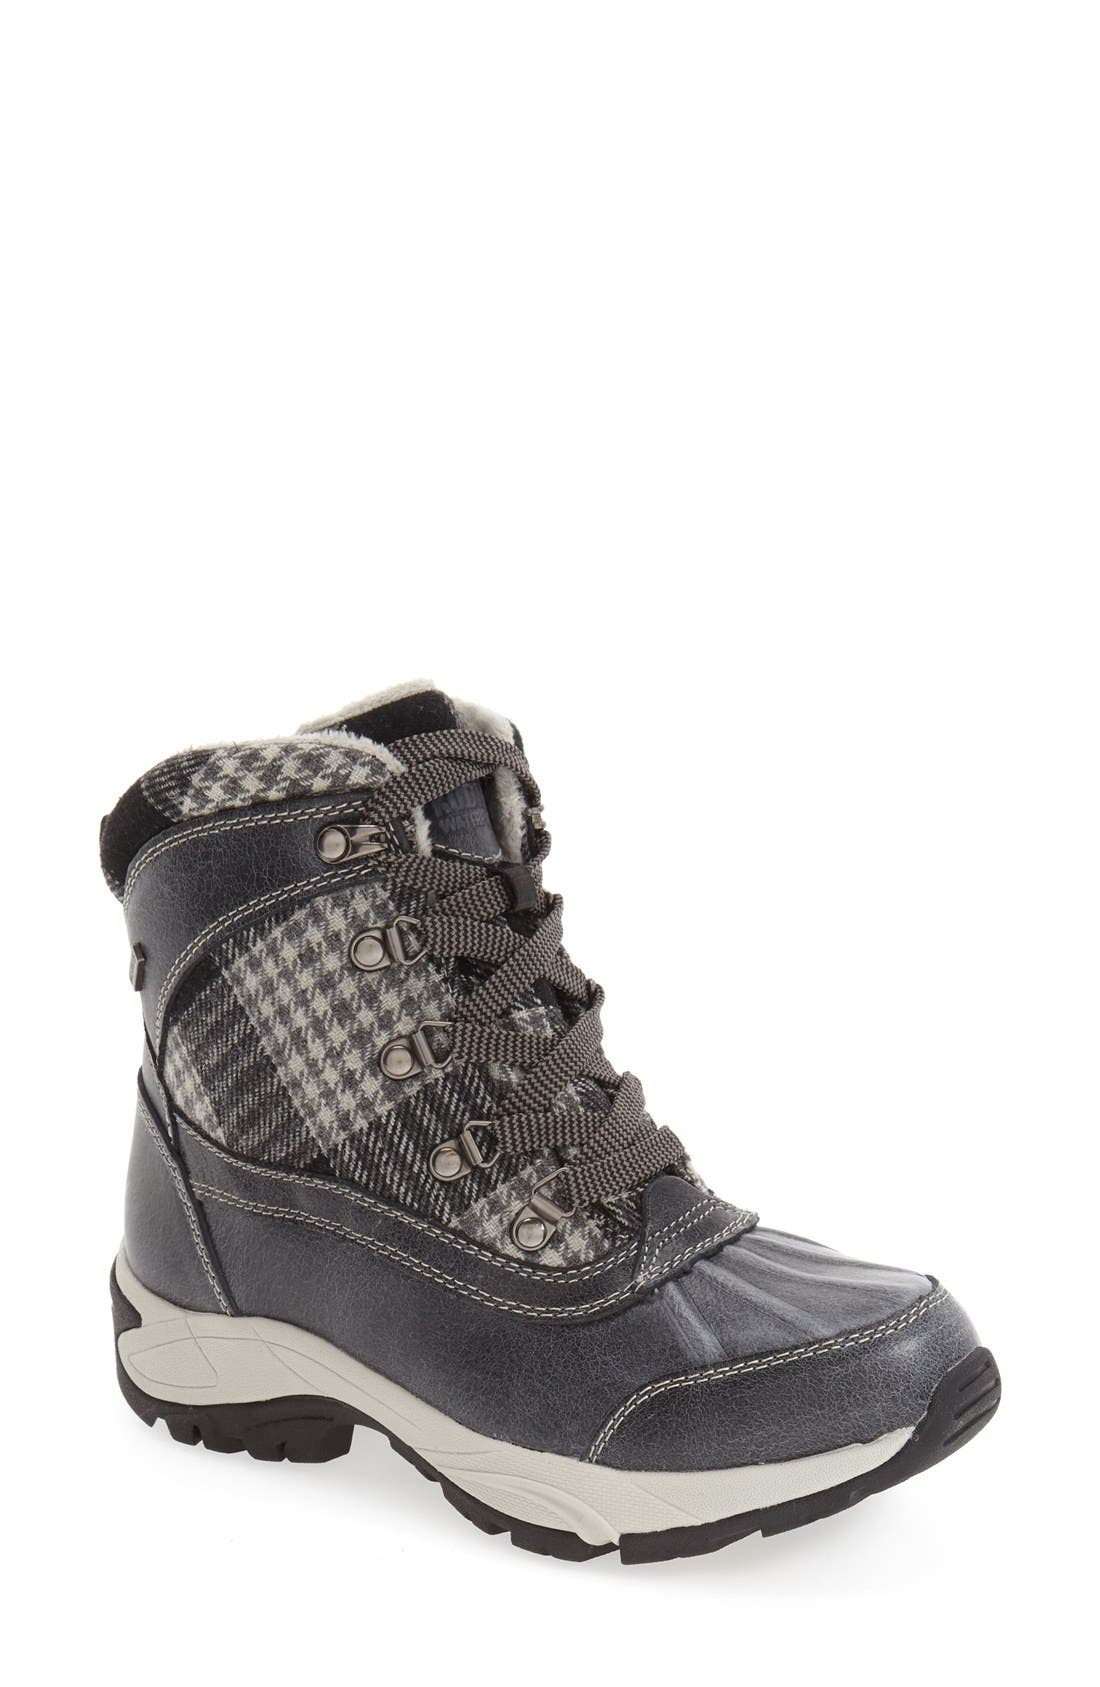 Rochelle Waterproof Insulated Winter Boot,                         Main,                         color, 002